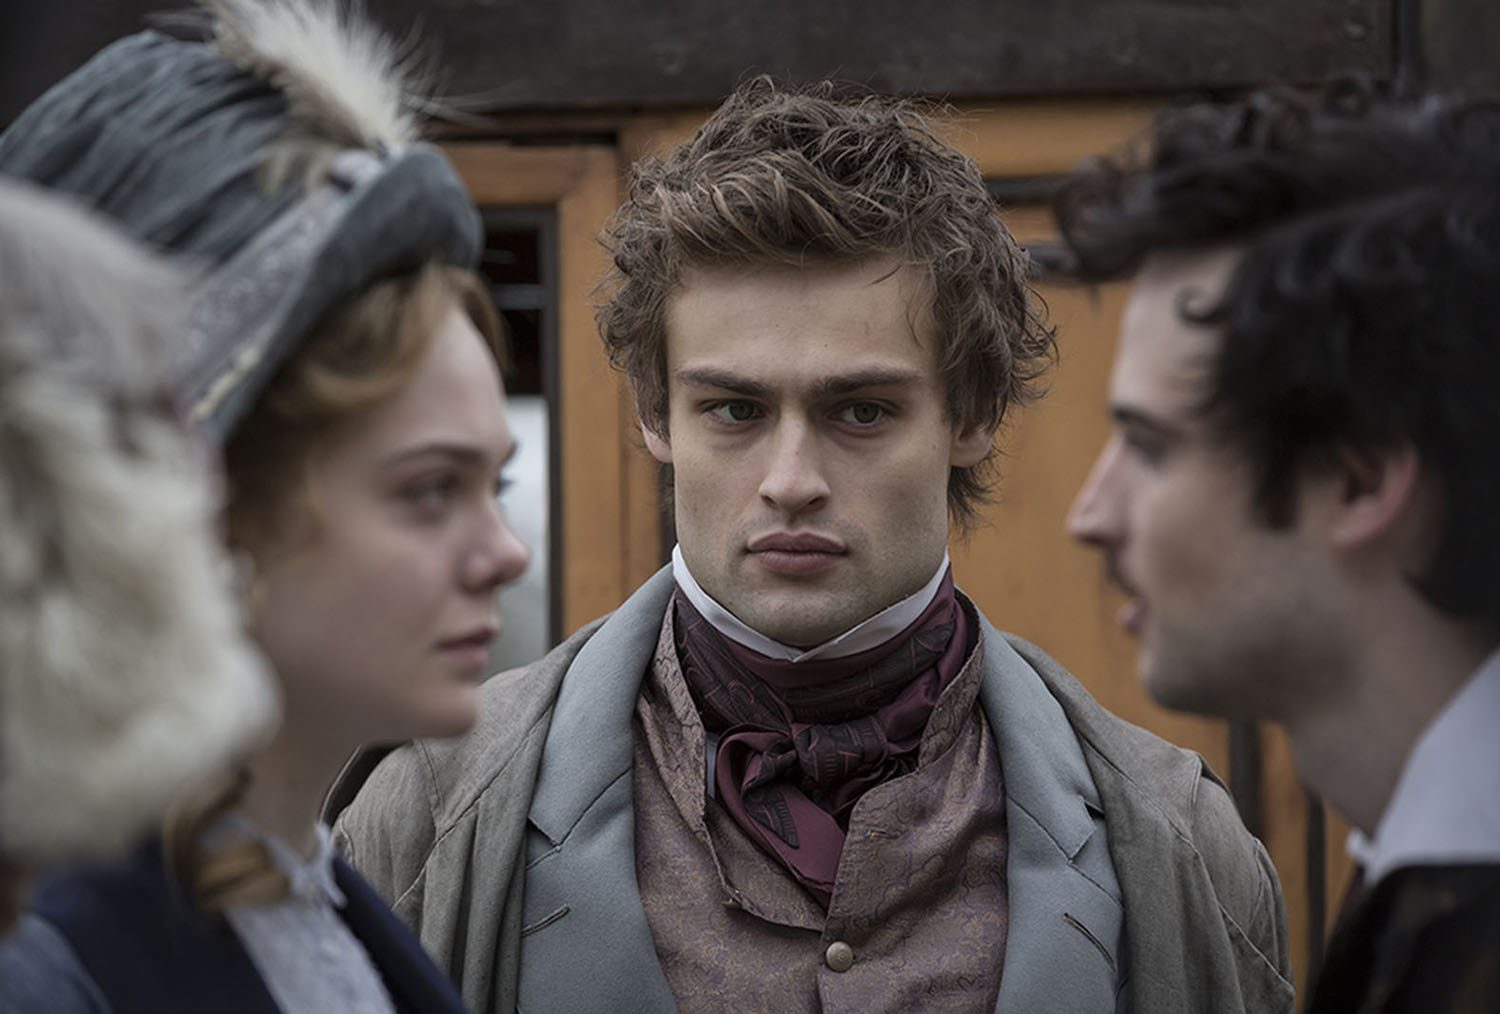 Elle Fanning, Douglas Booth, Tom Sturridge